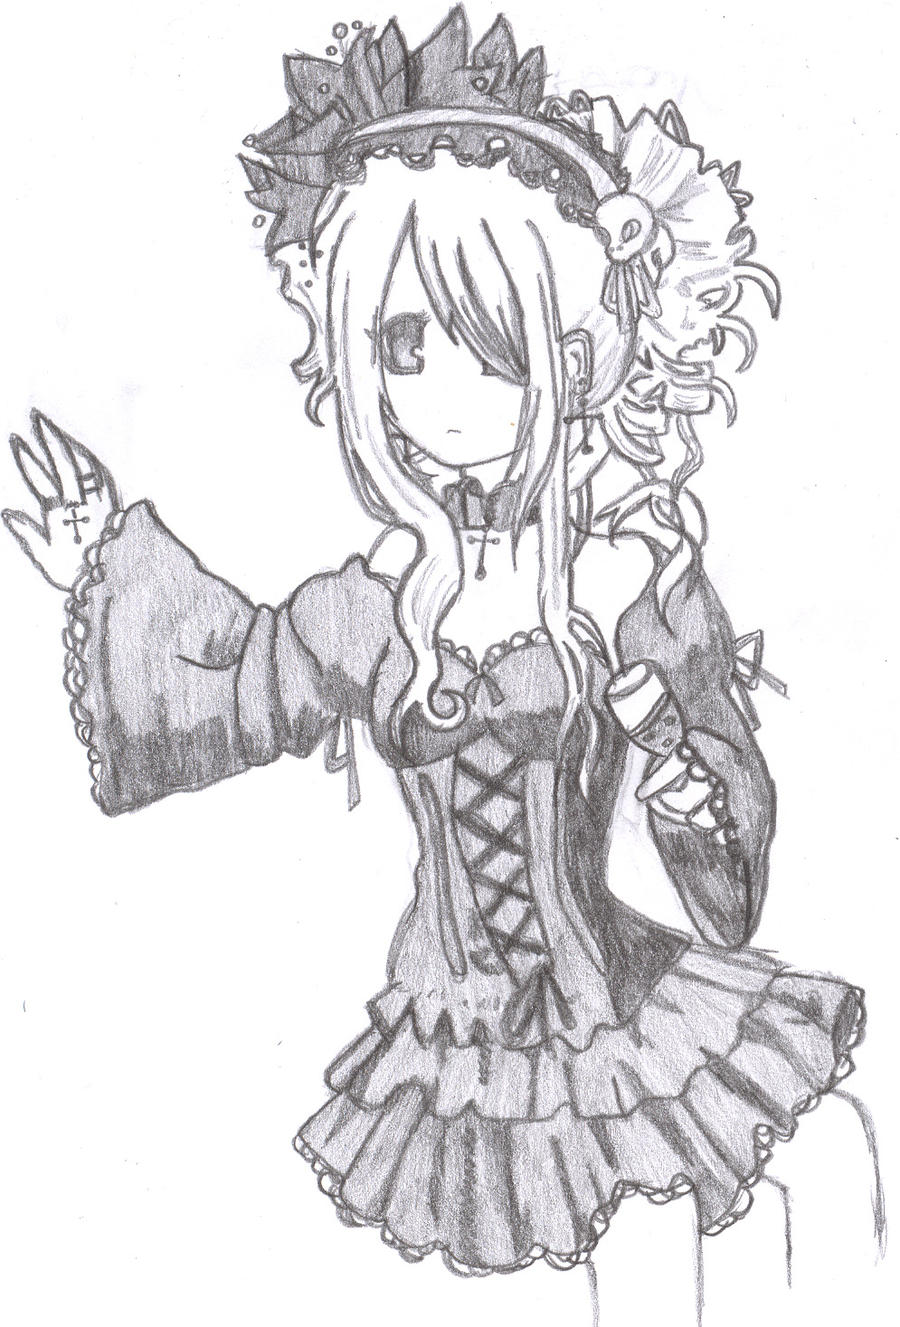 Gothic for life by FinnishGirl97 on DeviantArt